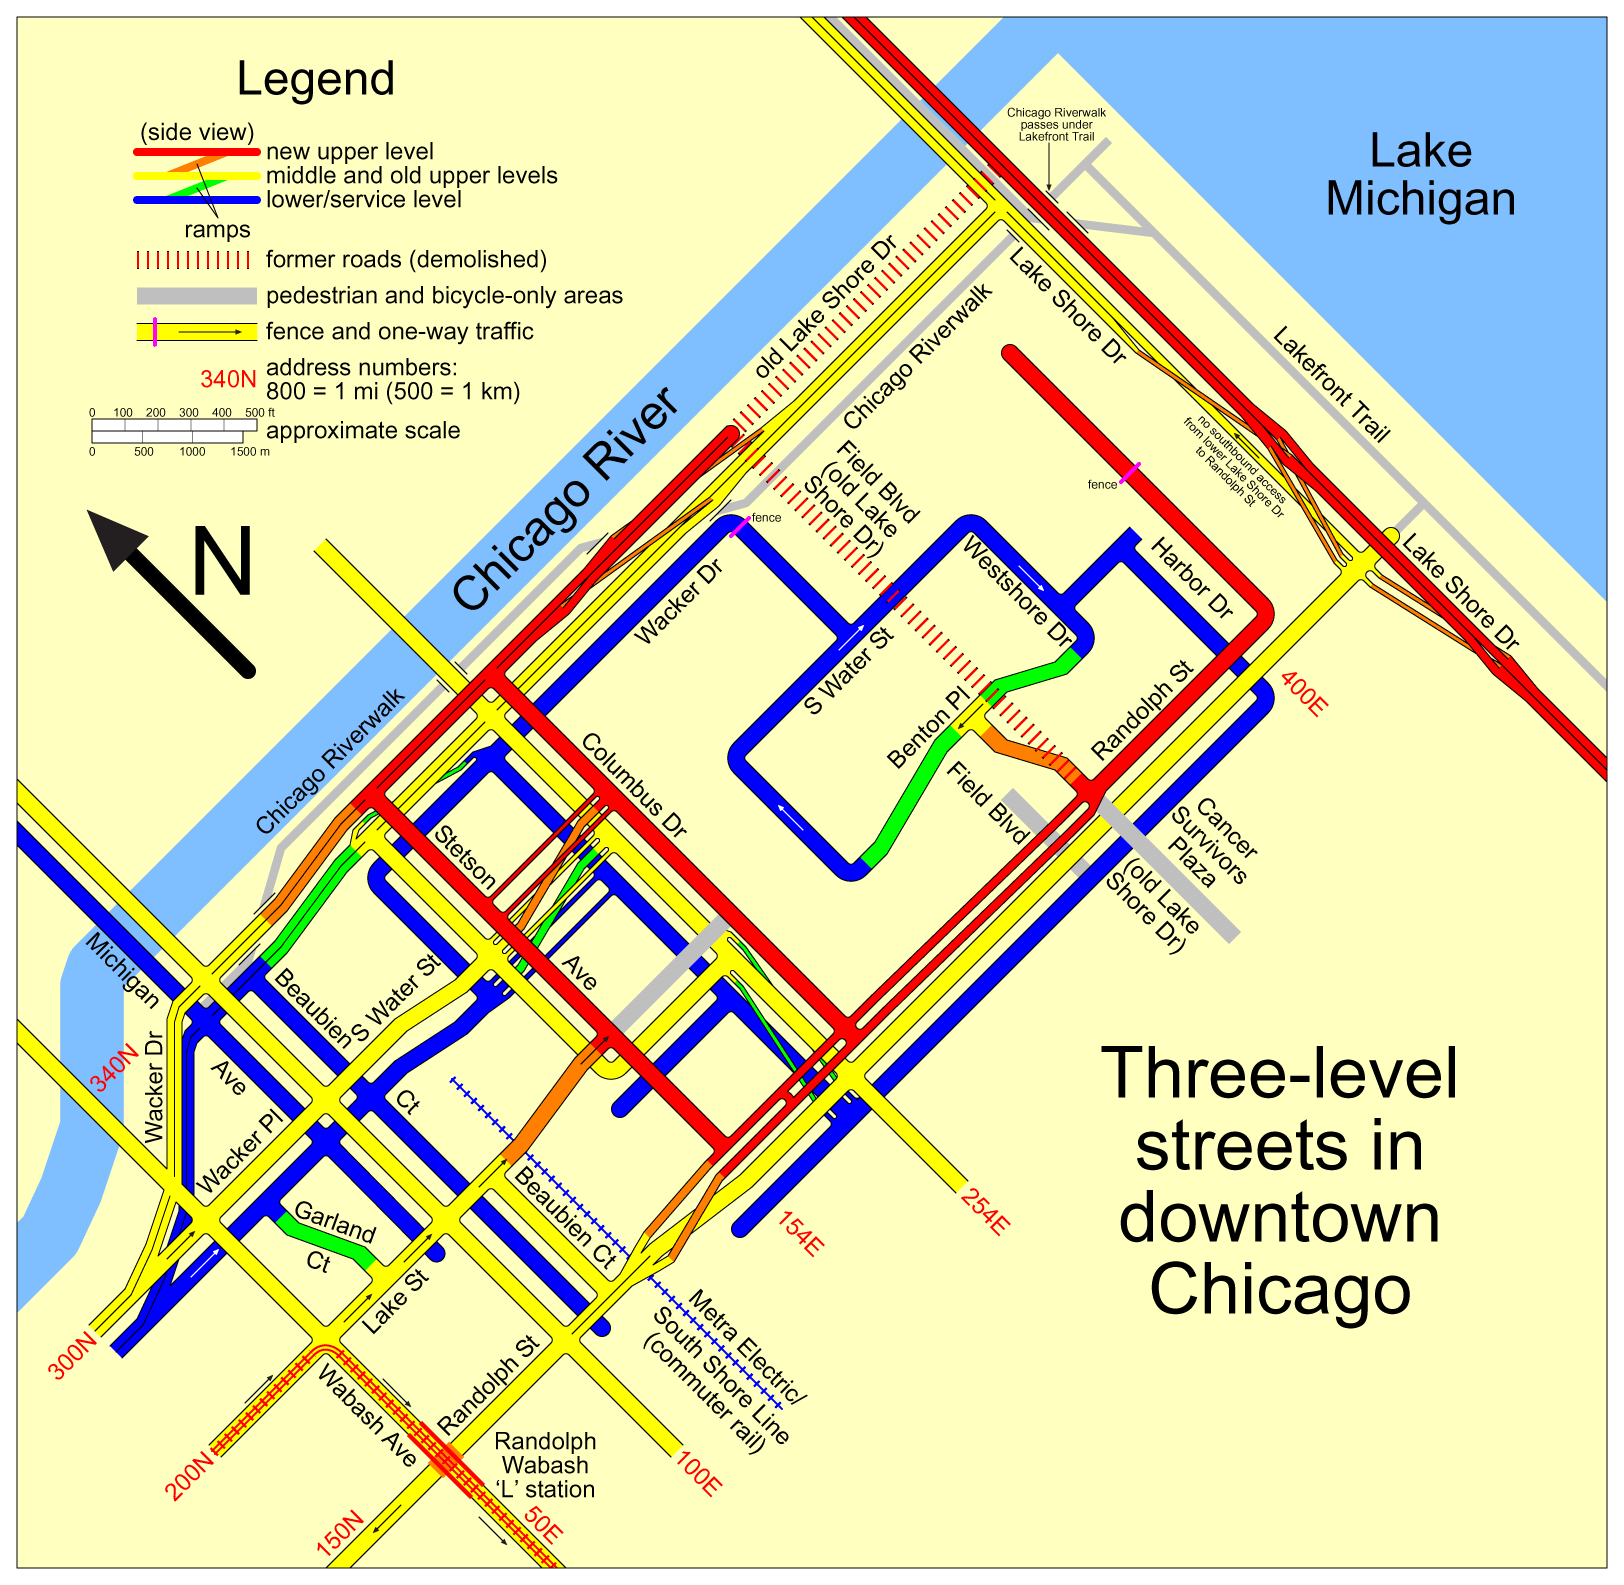 Multilevel streets in Chicago - Wikipedia